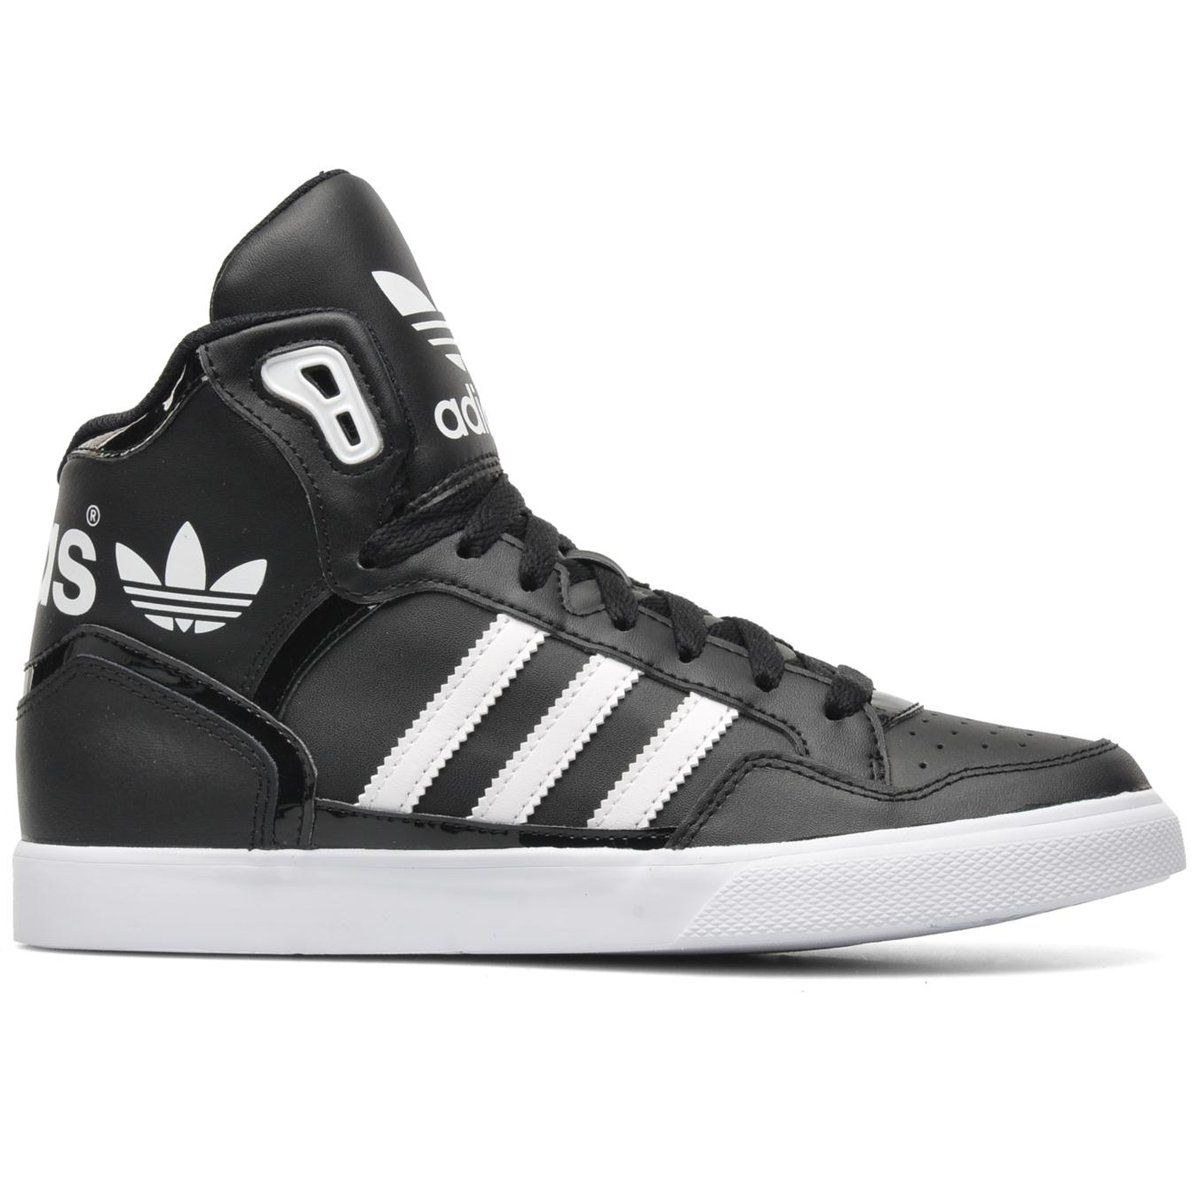 d7e5ba75be3b4 Amazon.com  Adidas Extraball W Black White Womens Trainers  Shoes ...